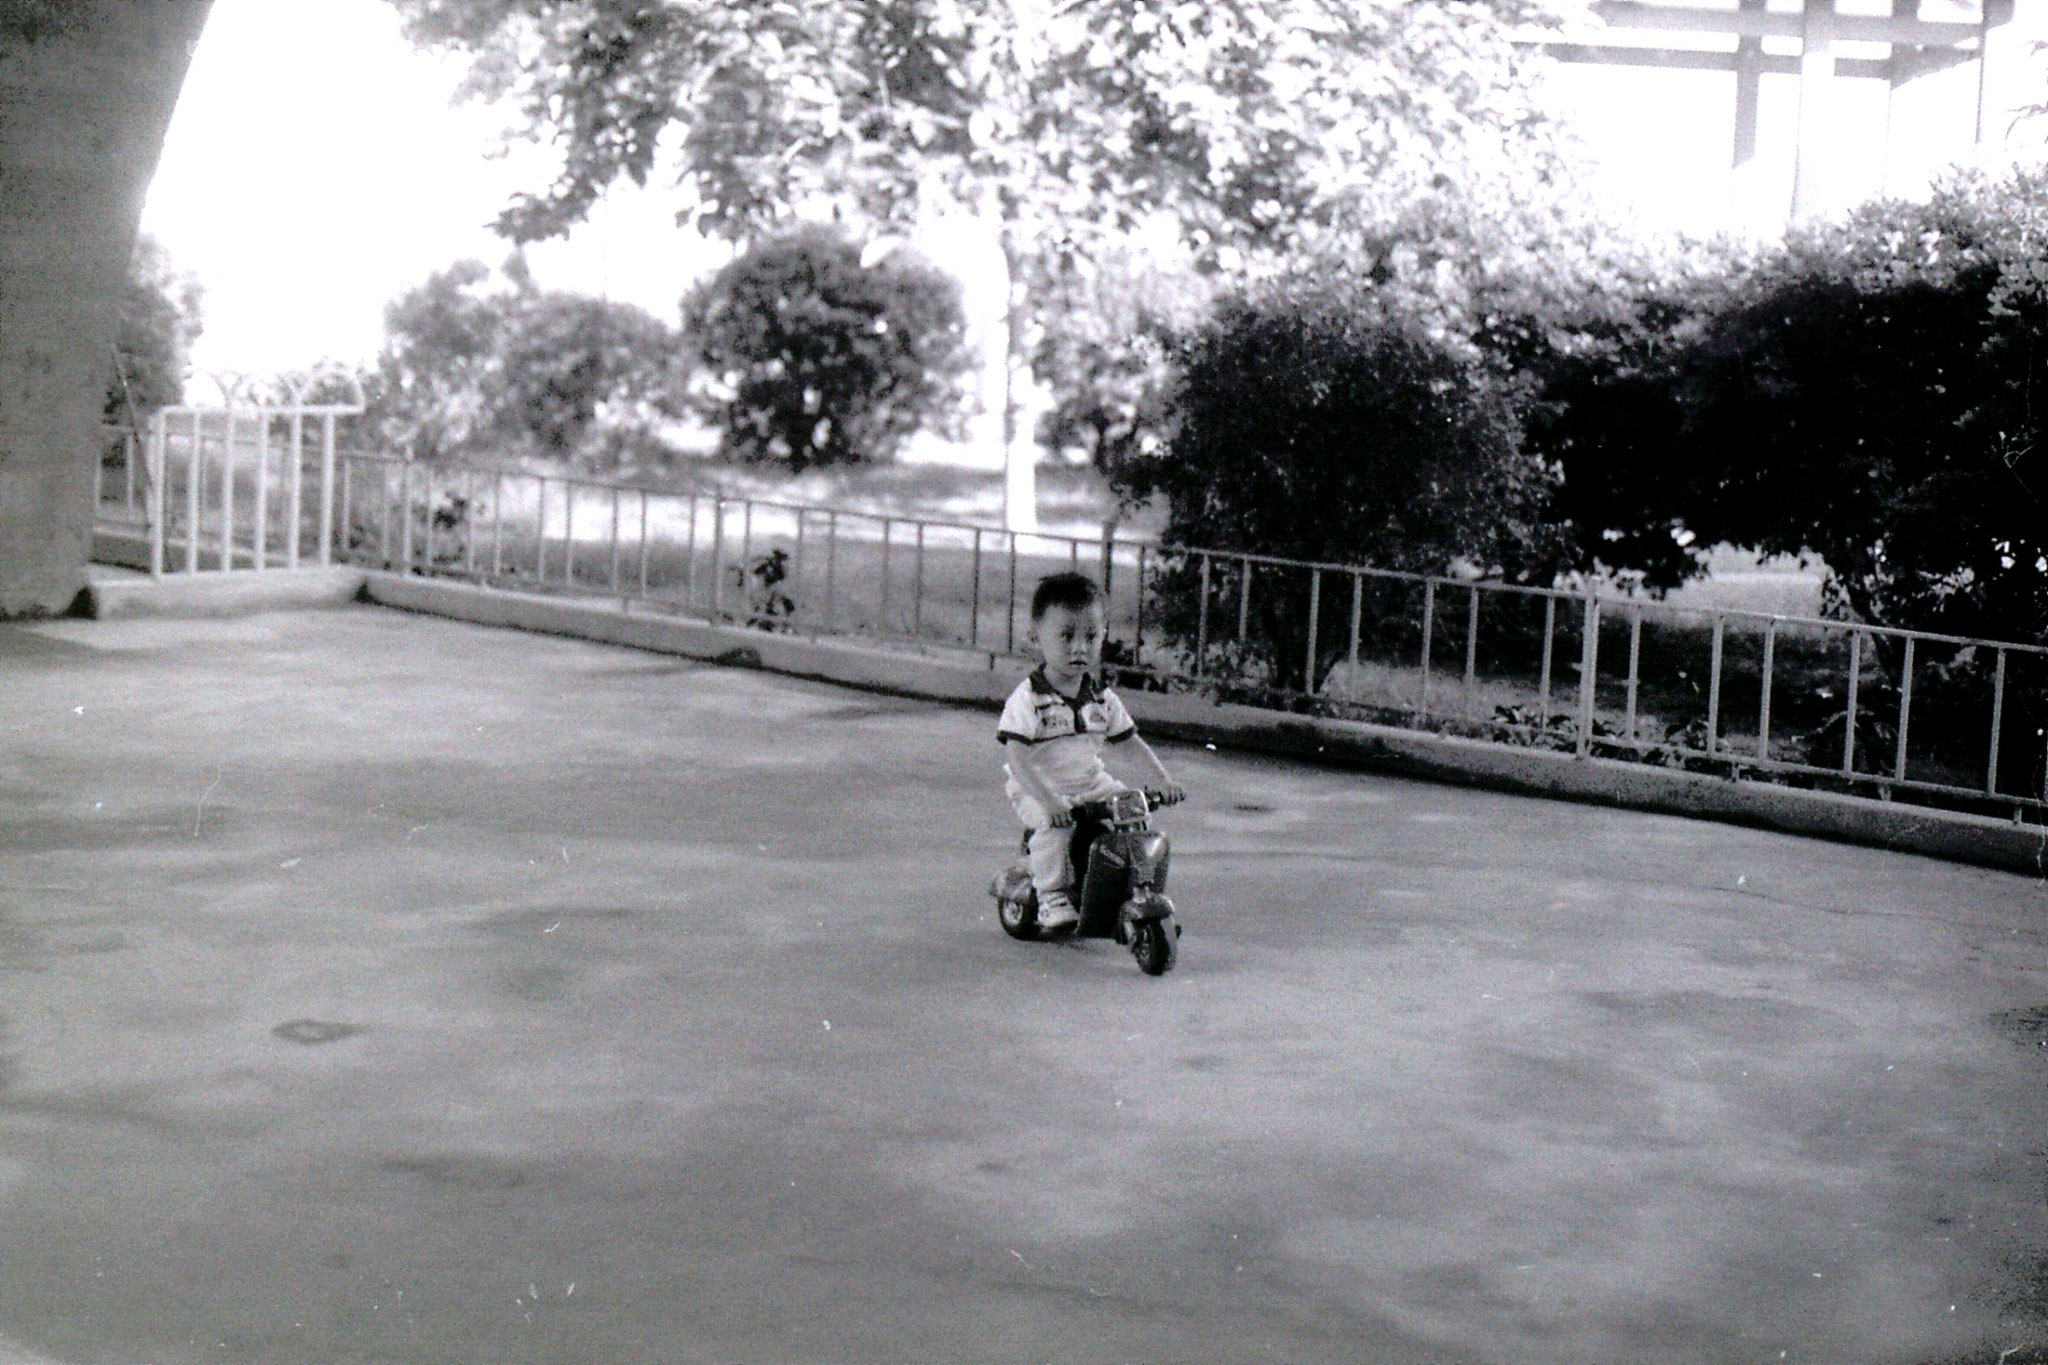 17/5/1989: 22: Guangzhou boy on miniature motor bike